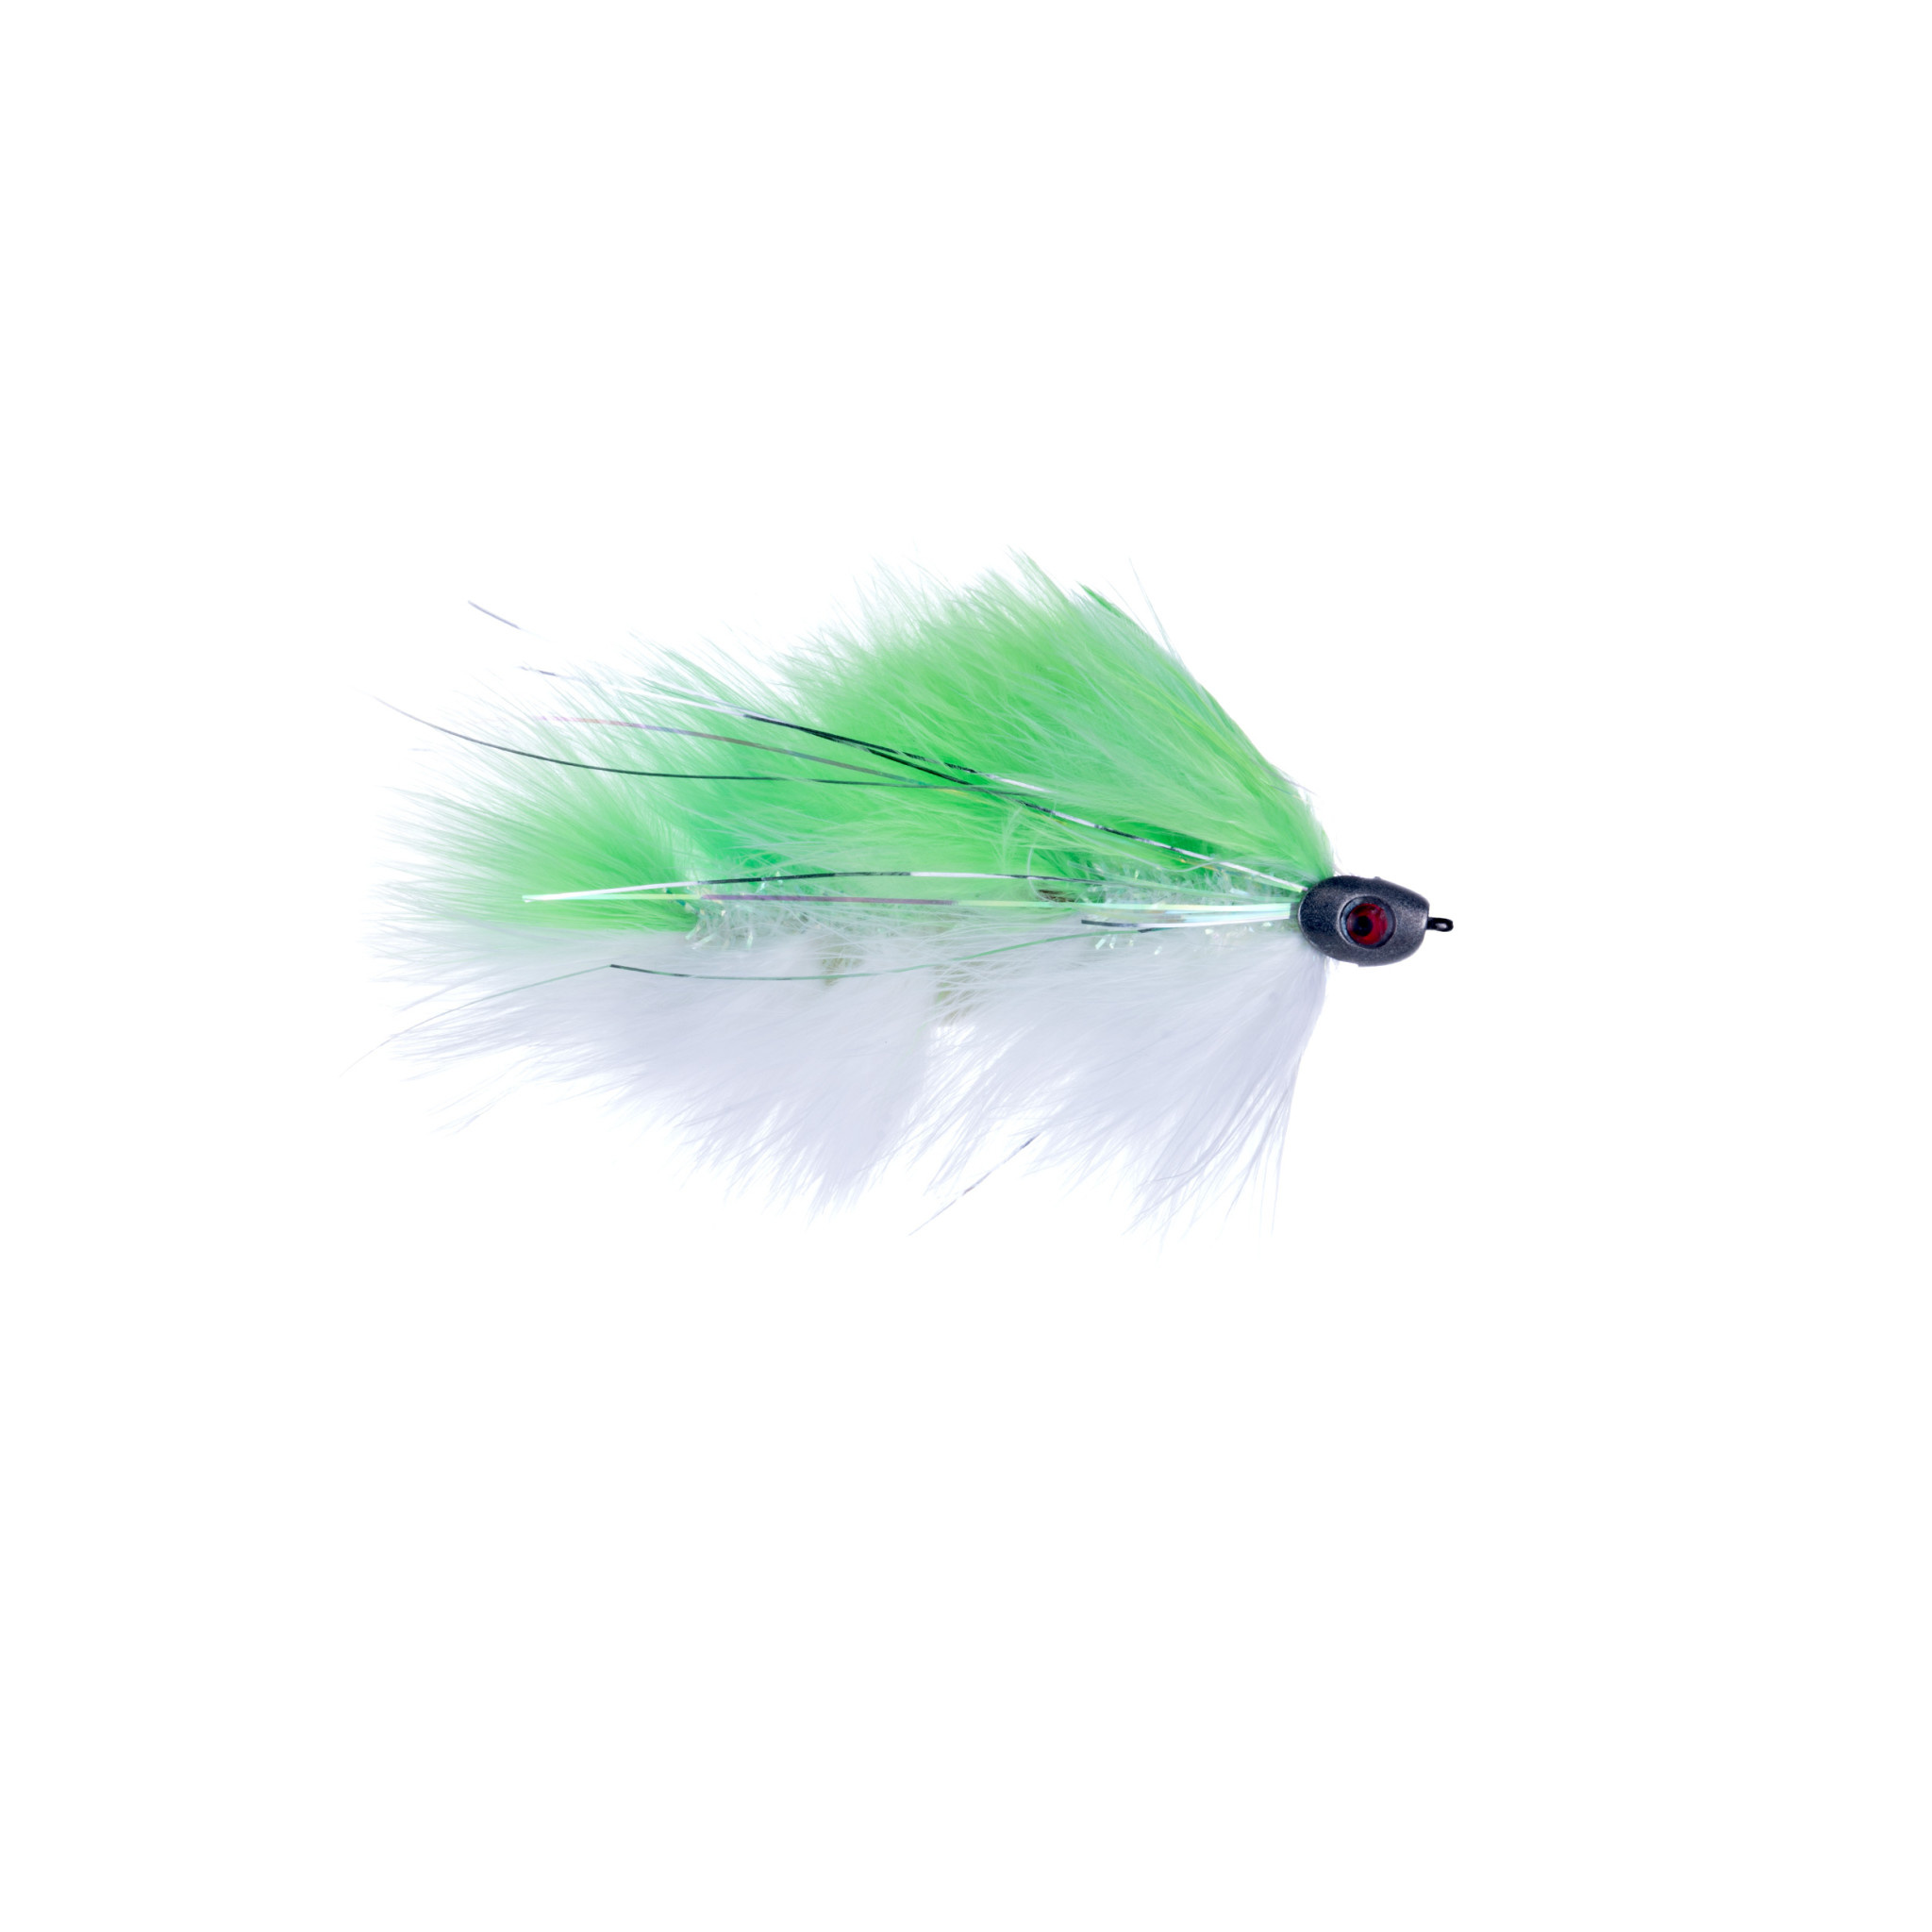 Galloup's Barely Legal (Fish Skull) White #4